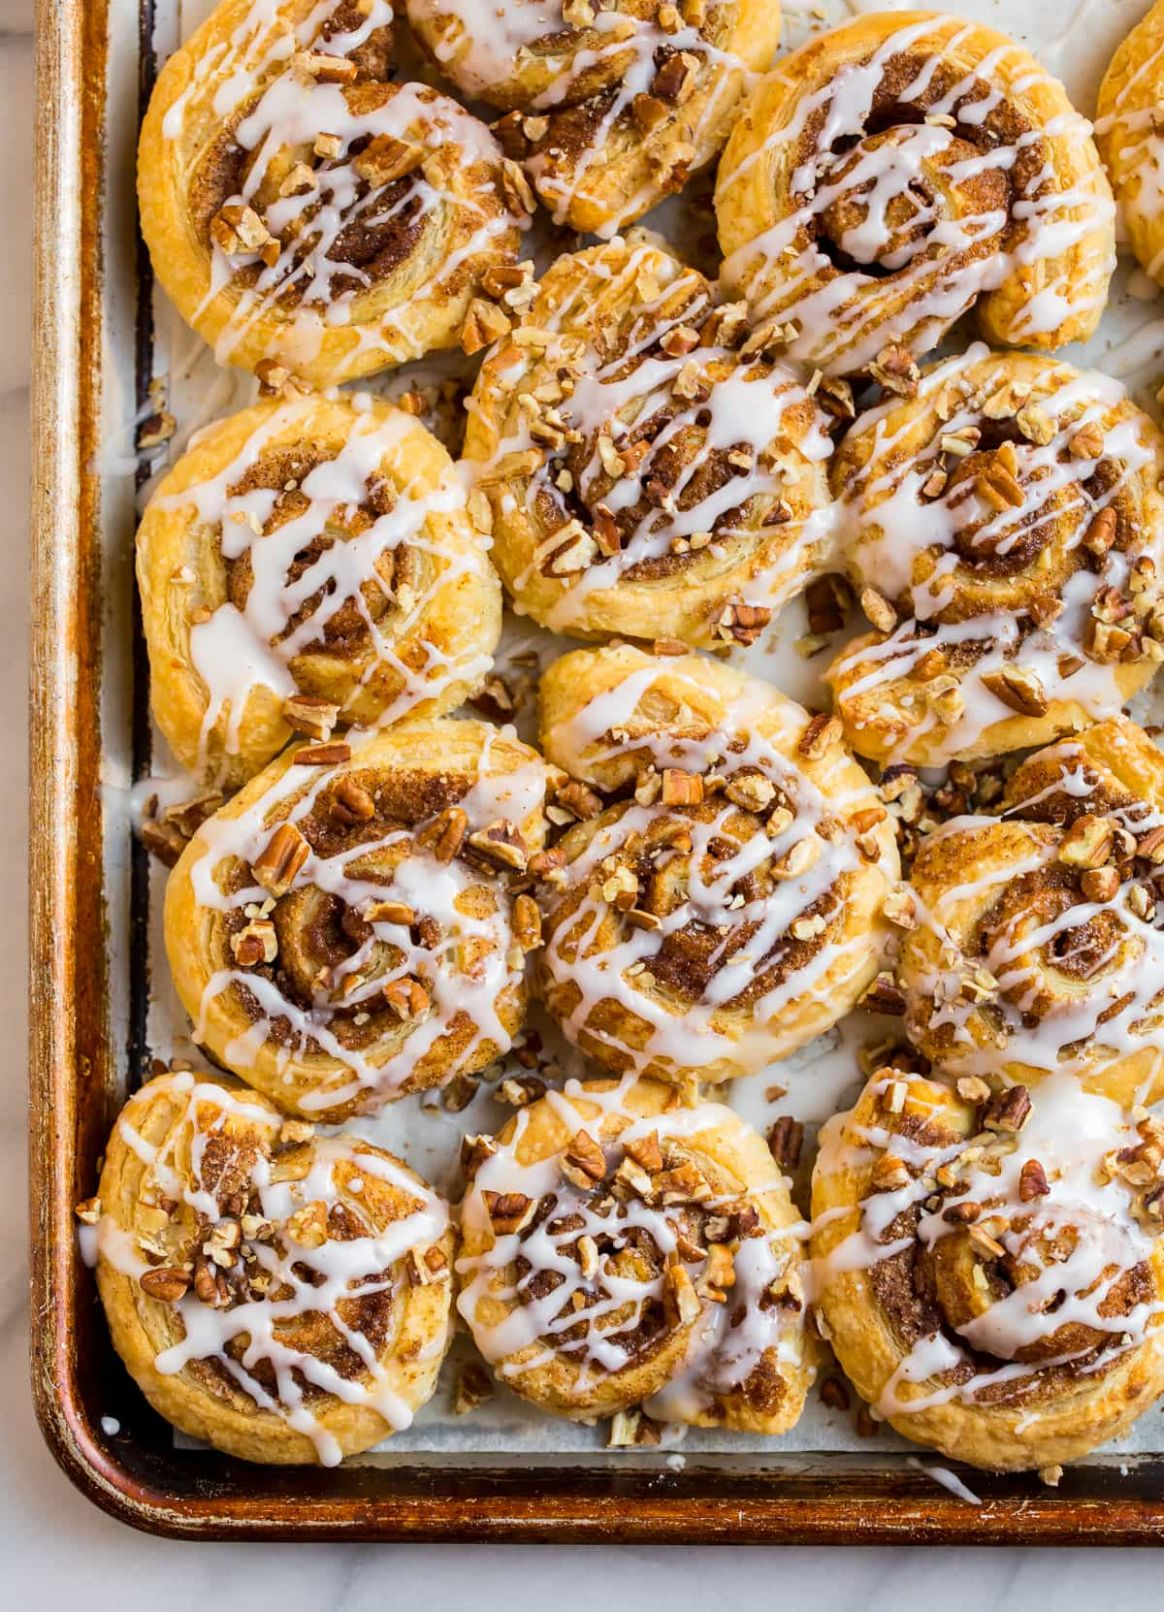 Puff Pastry Cinnamon Rolls - Simple Recipes Using Puff Pastry